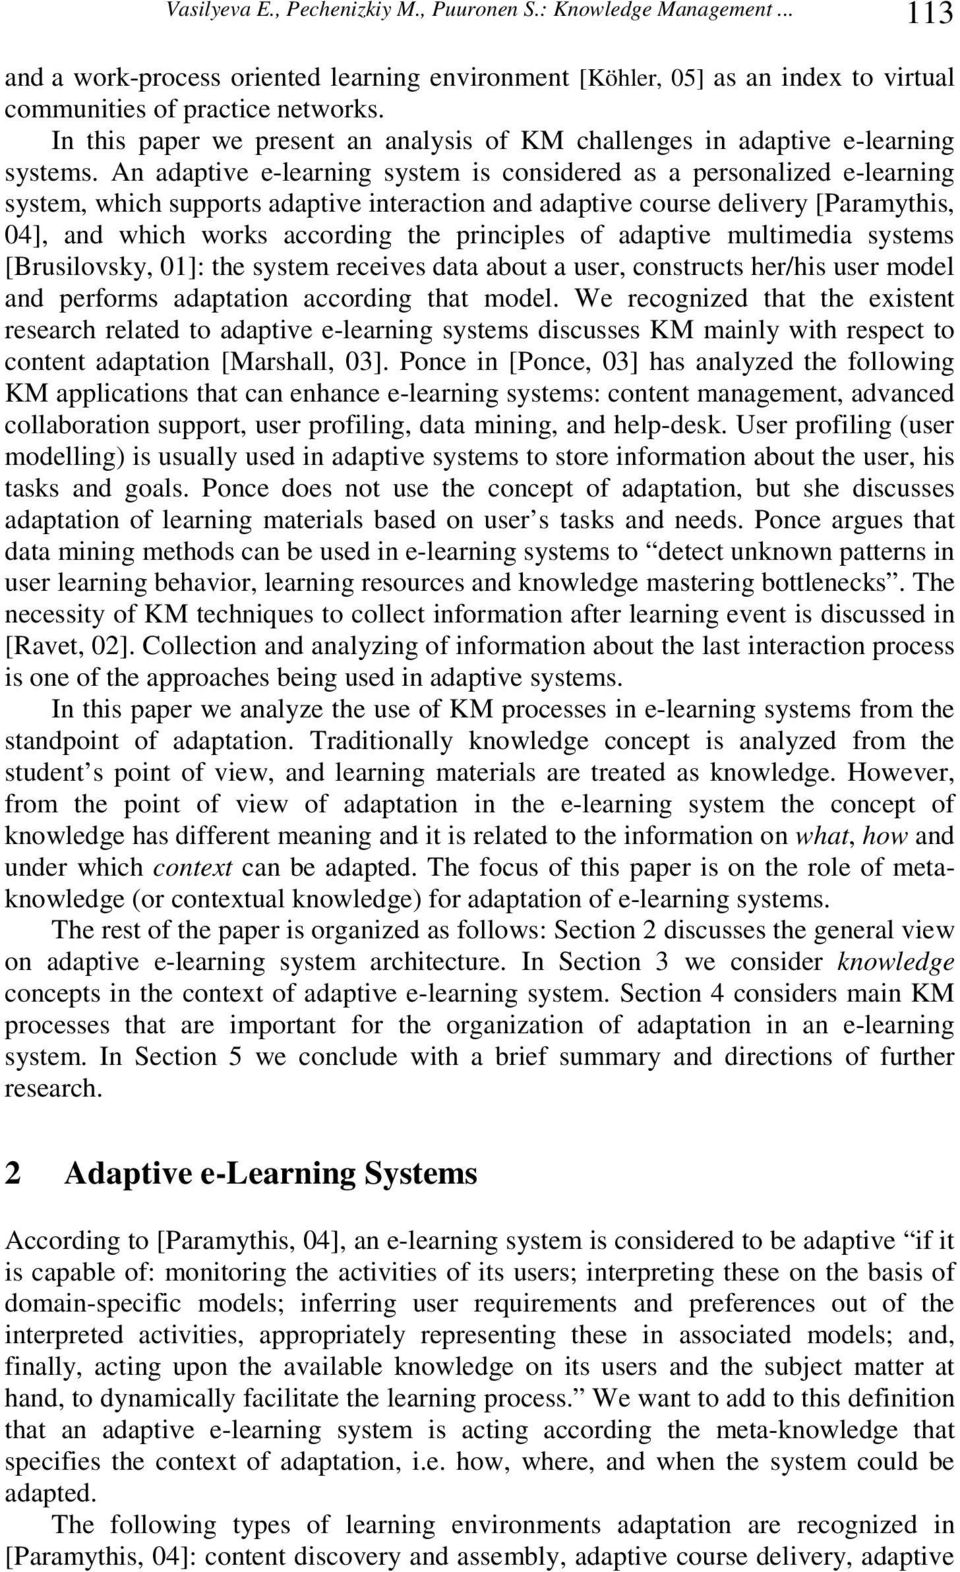 An adaptive e-learning system is considered as a personalized e-learning system, which supports adaptive interaction and adaptive course delivery [Paramythis, 04], and which works according the